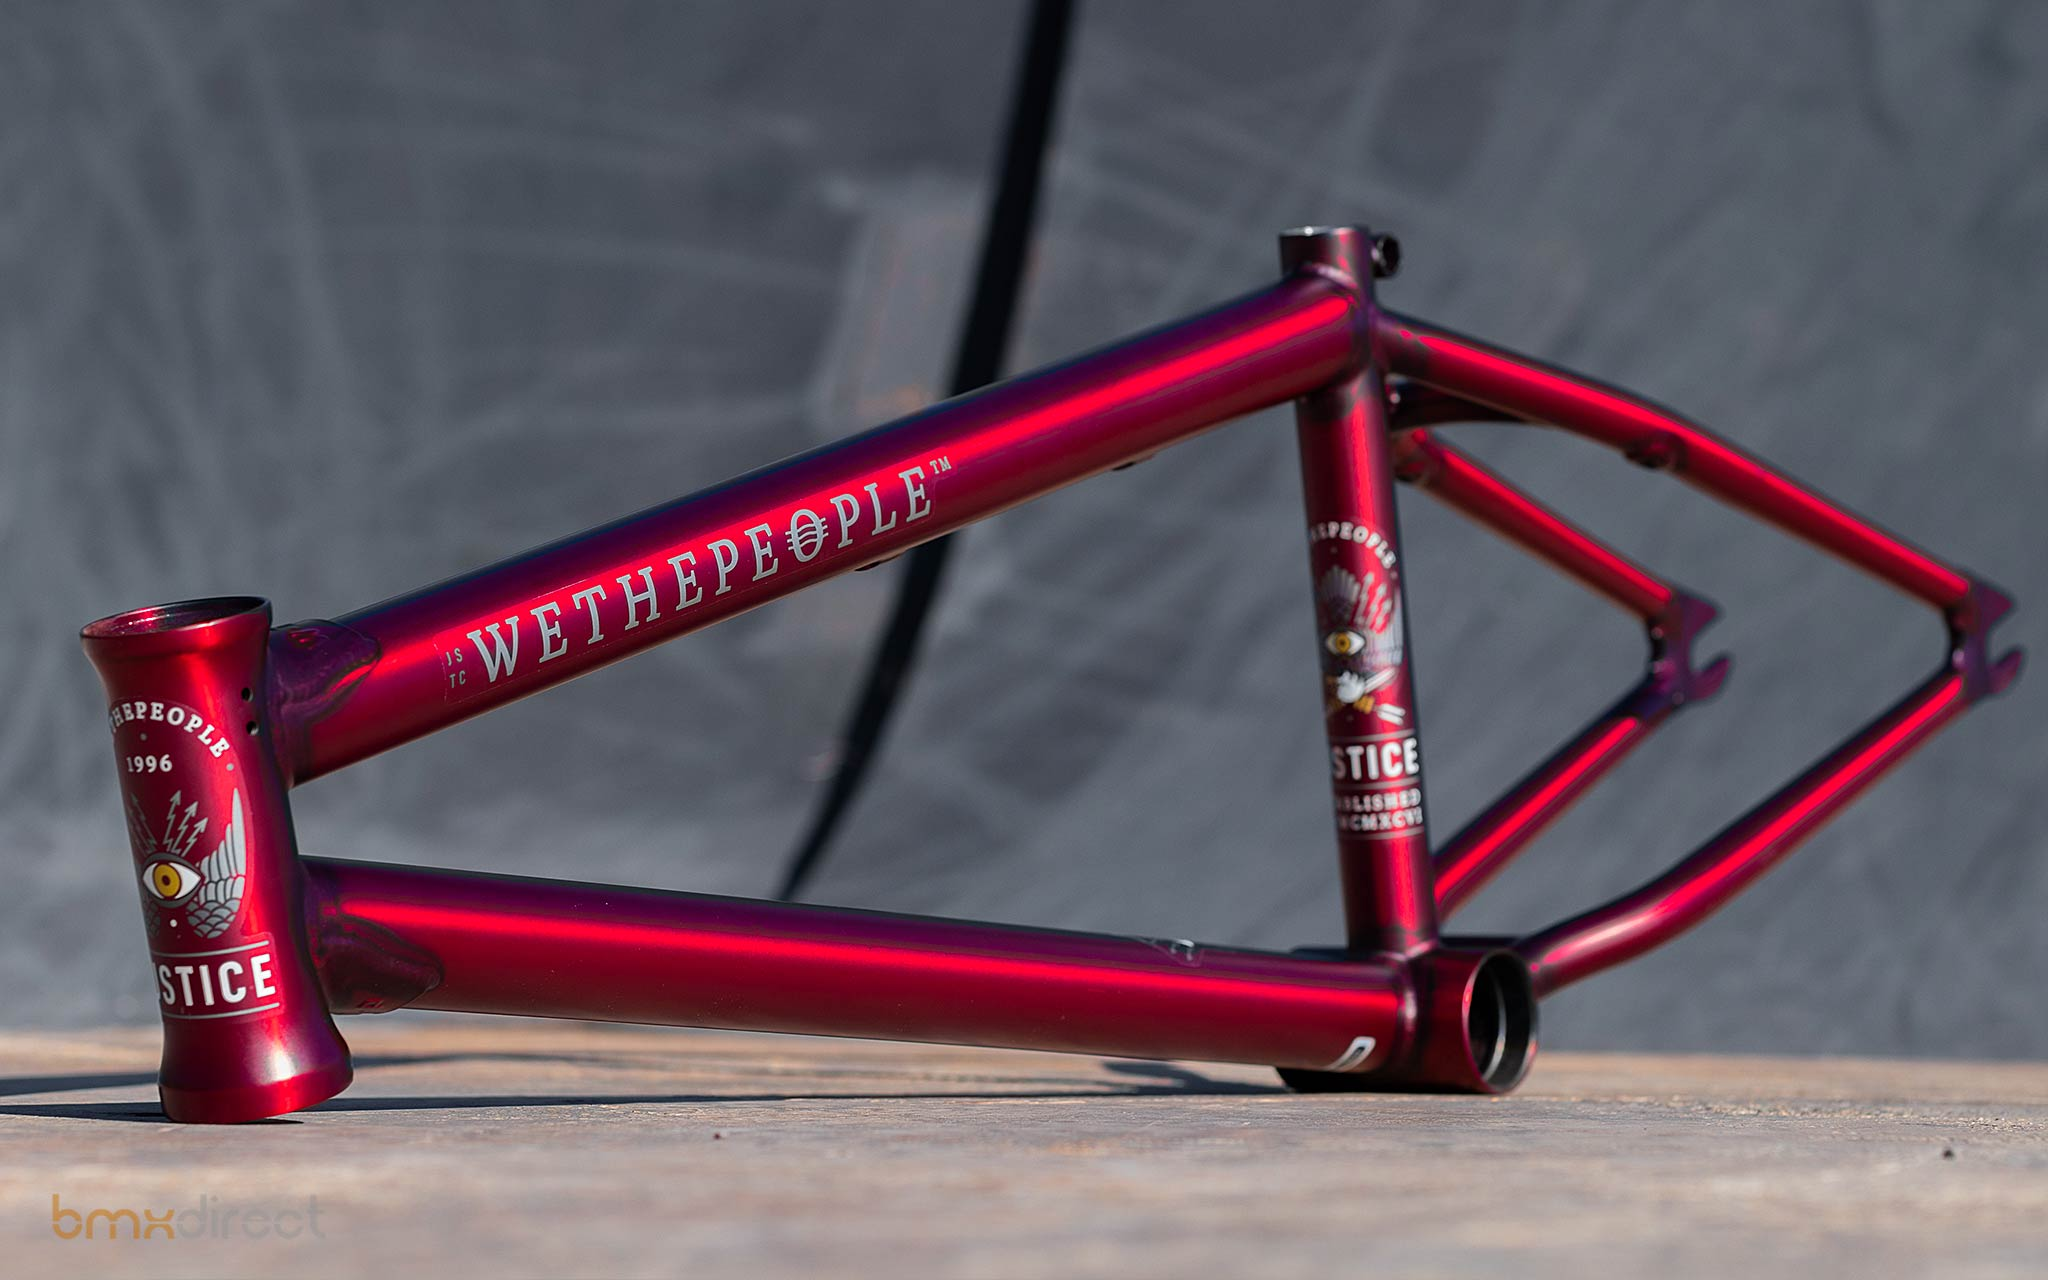 We The People Justice Frame - BMX Direct